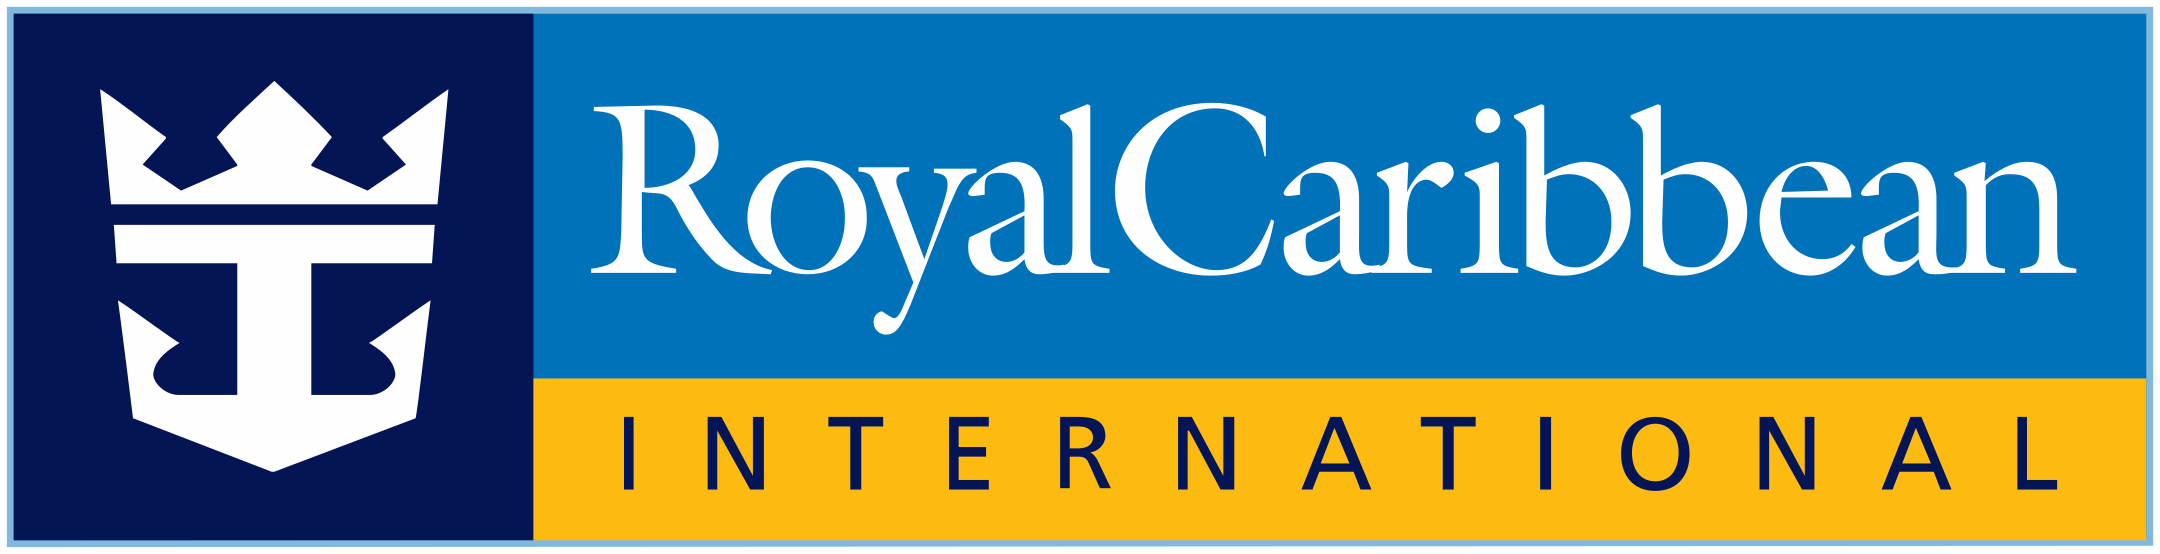 royal caribbean logo 1 - Royal Caribbean Logo